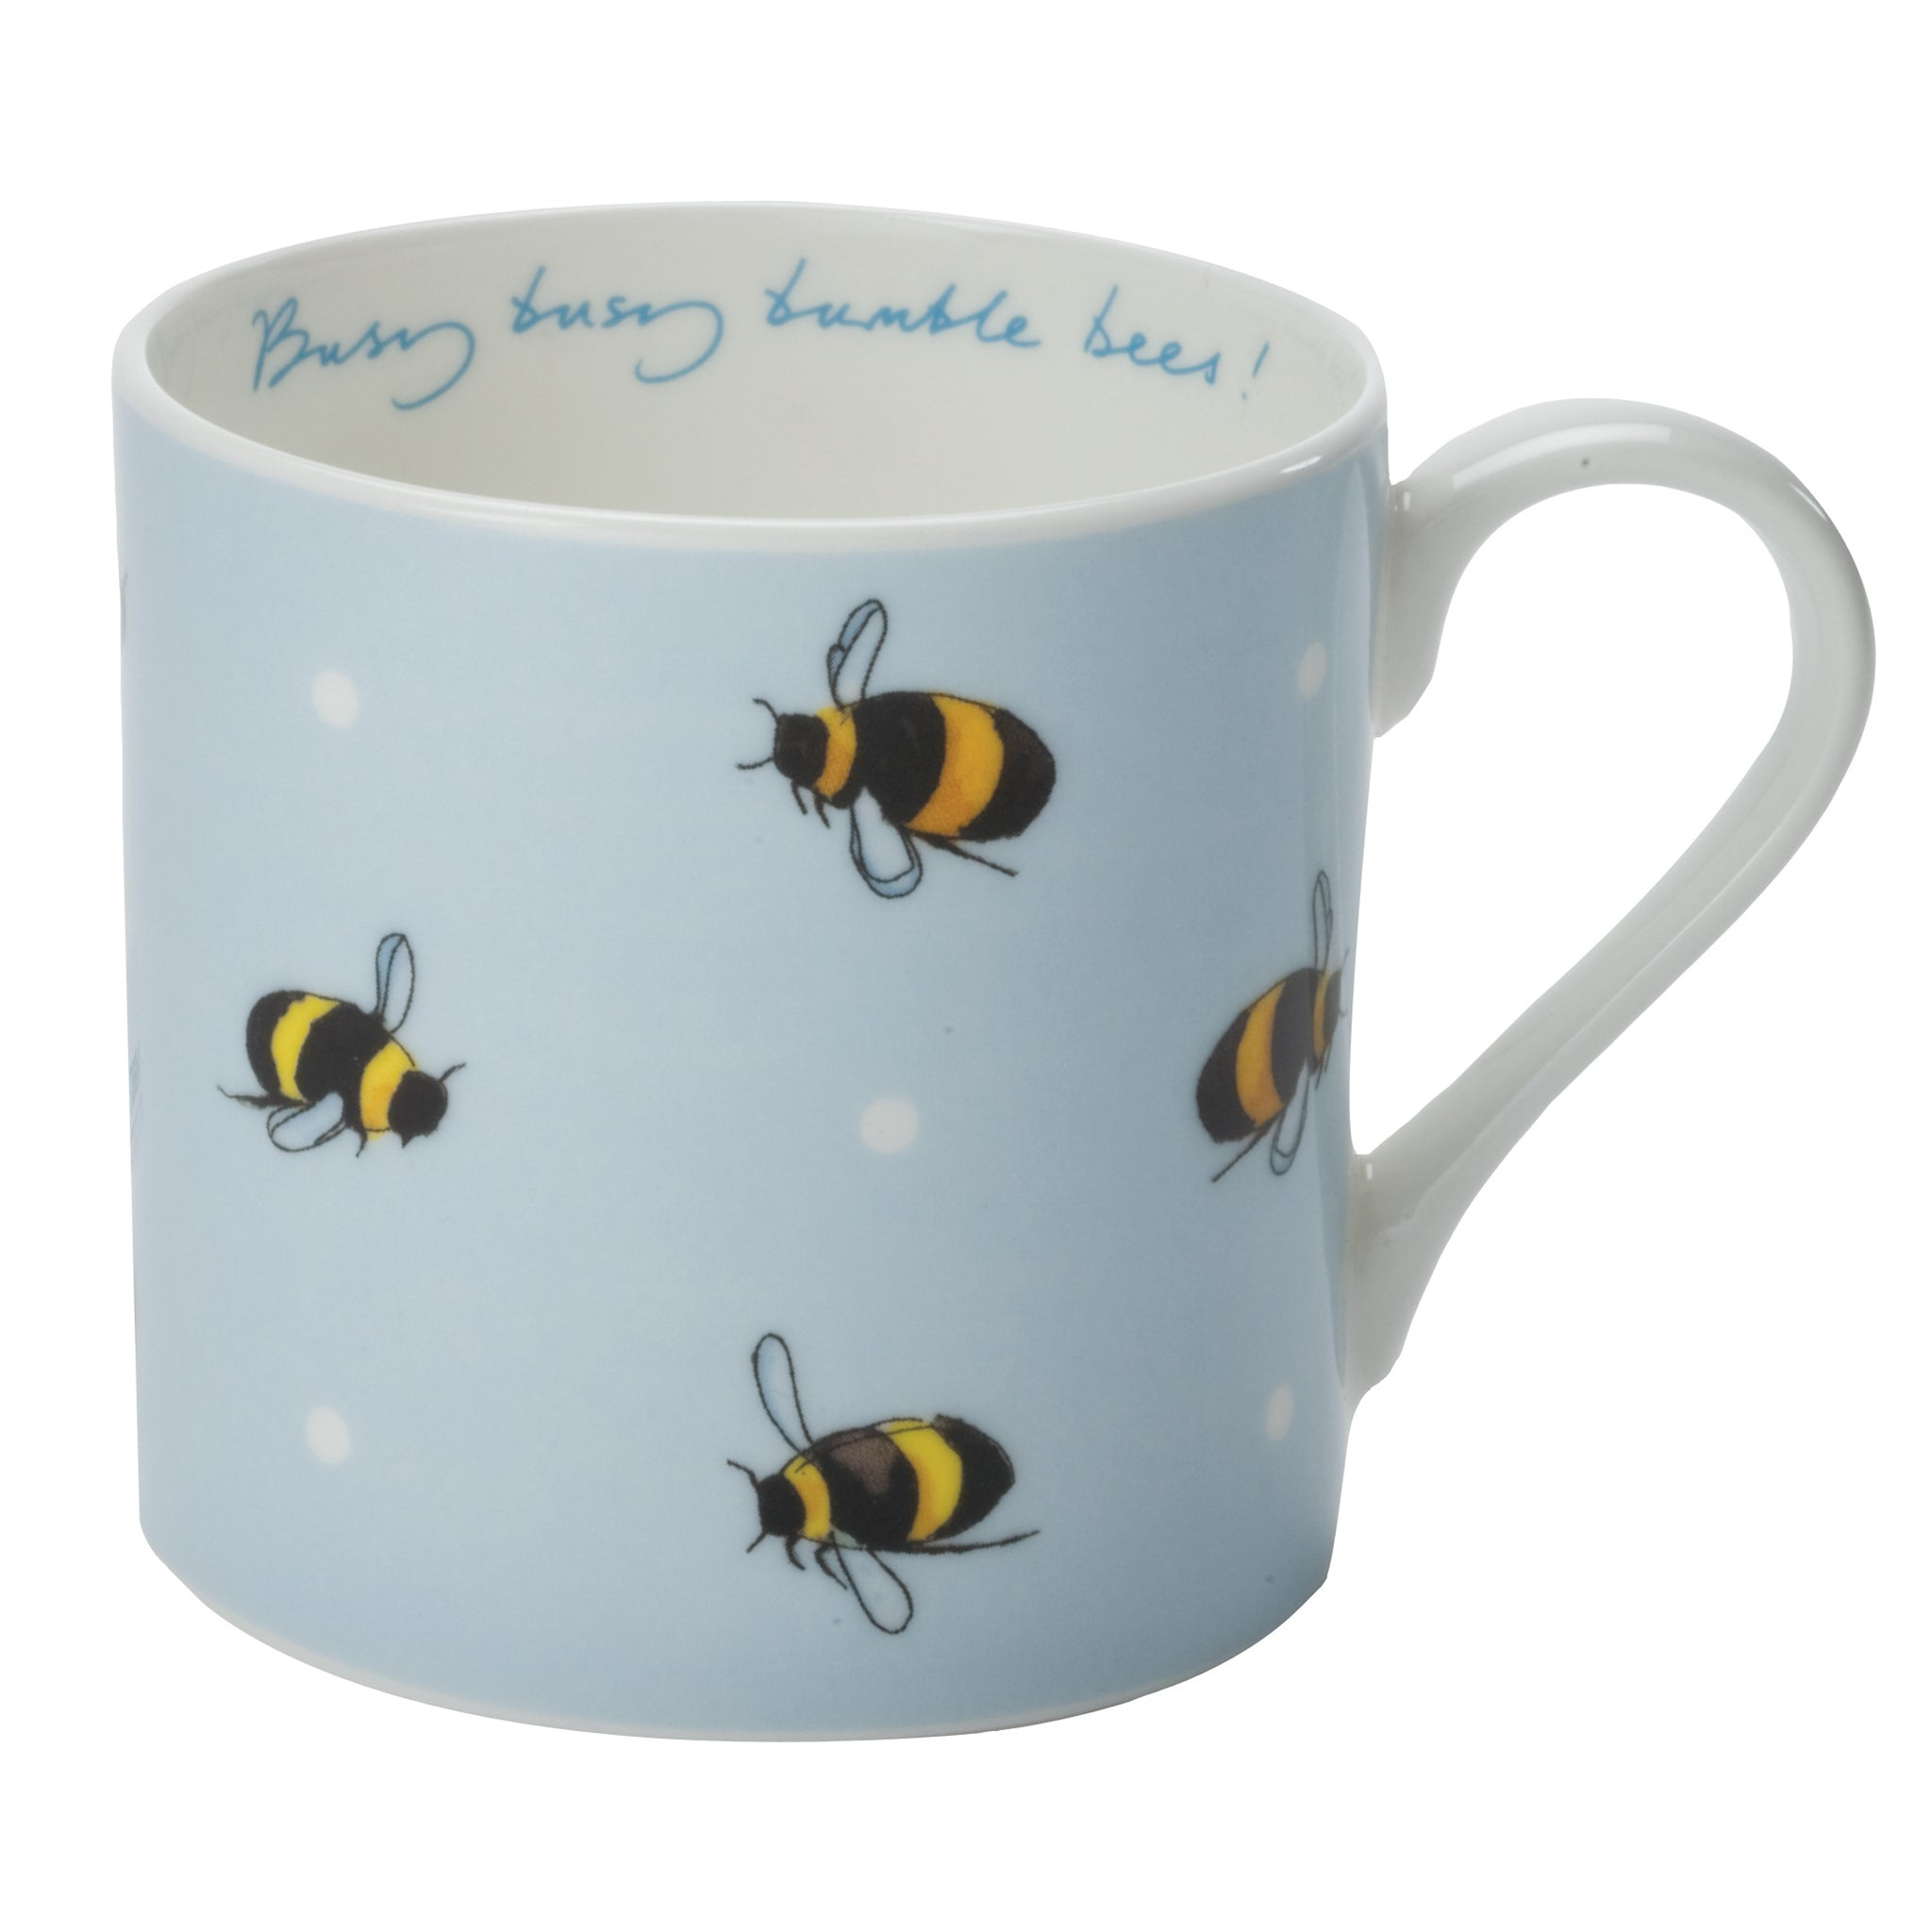 Busy Bee Mug - Blue